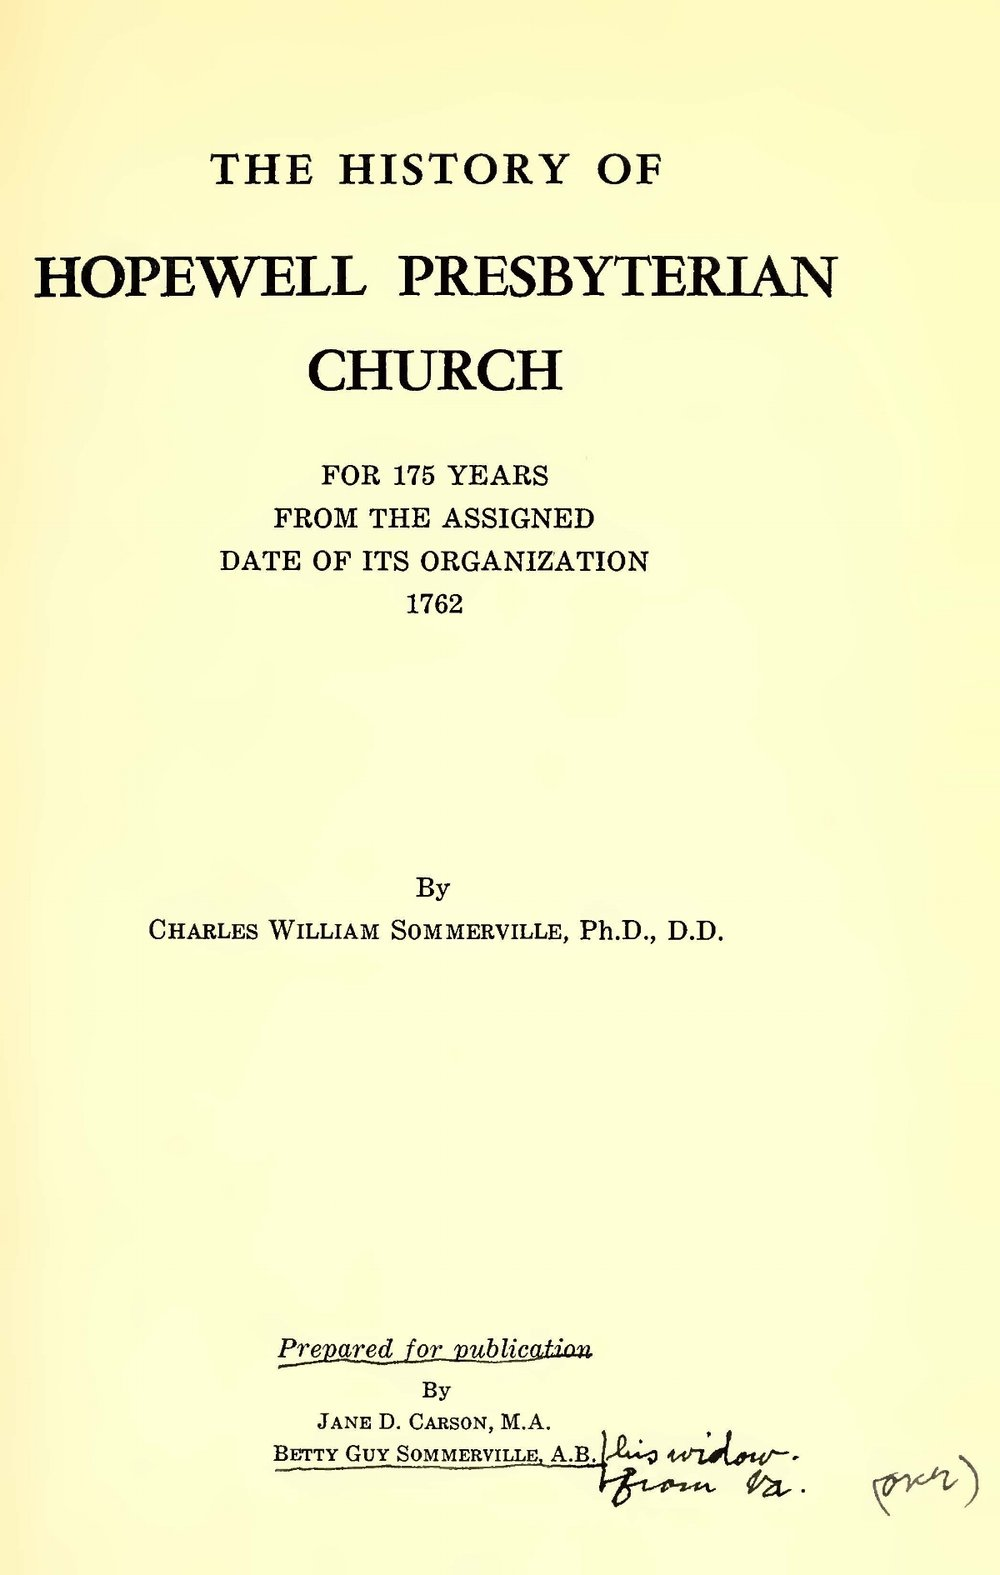 Sommerville, Charles William, The History of Hopewell Presbyterian Church Title Page.jpg